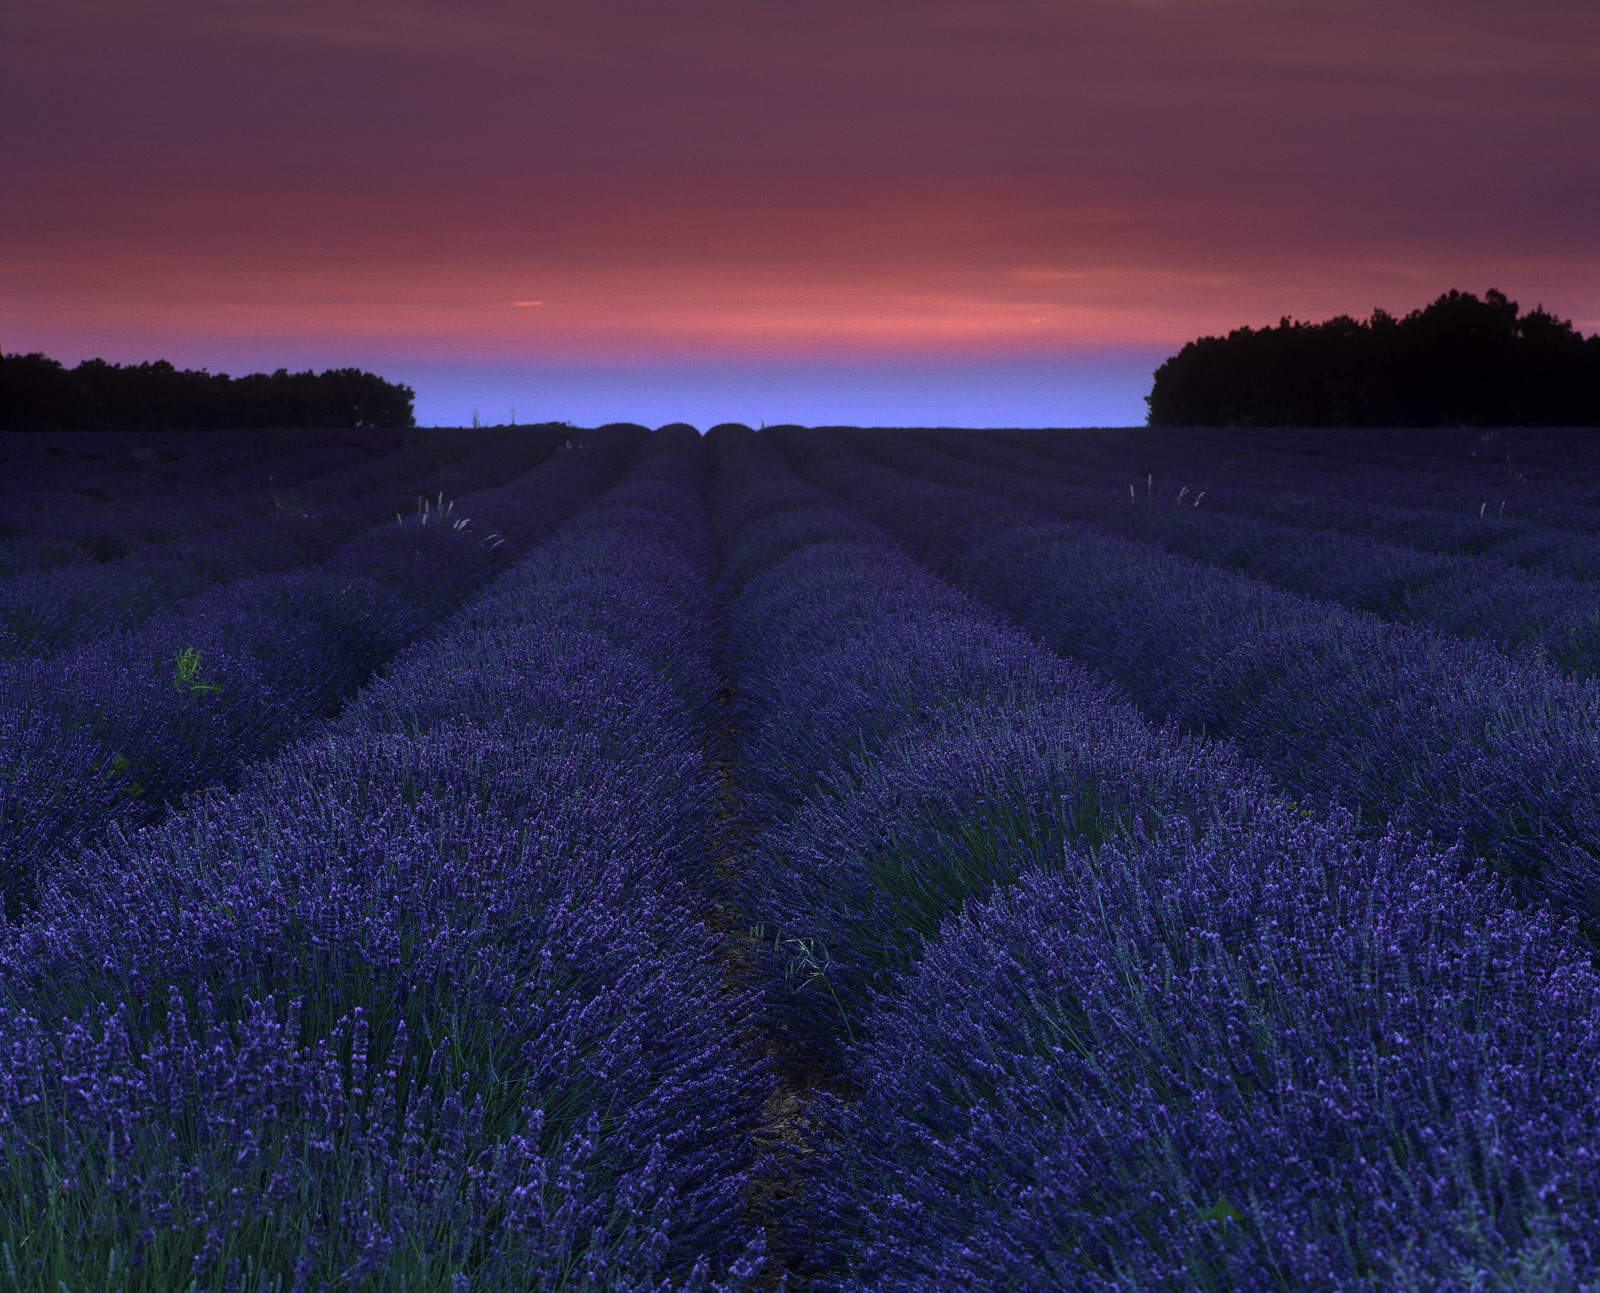 One of the very few fields that I found that seems to have been planted directly in line with the setting sun at peak of the...